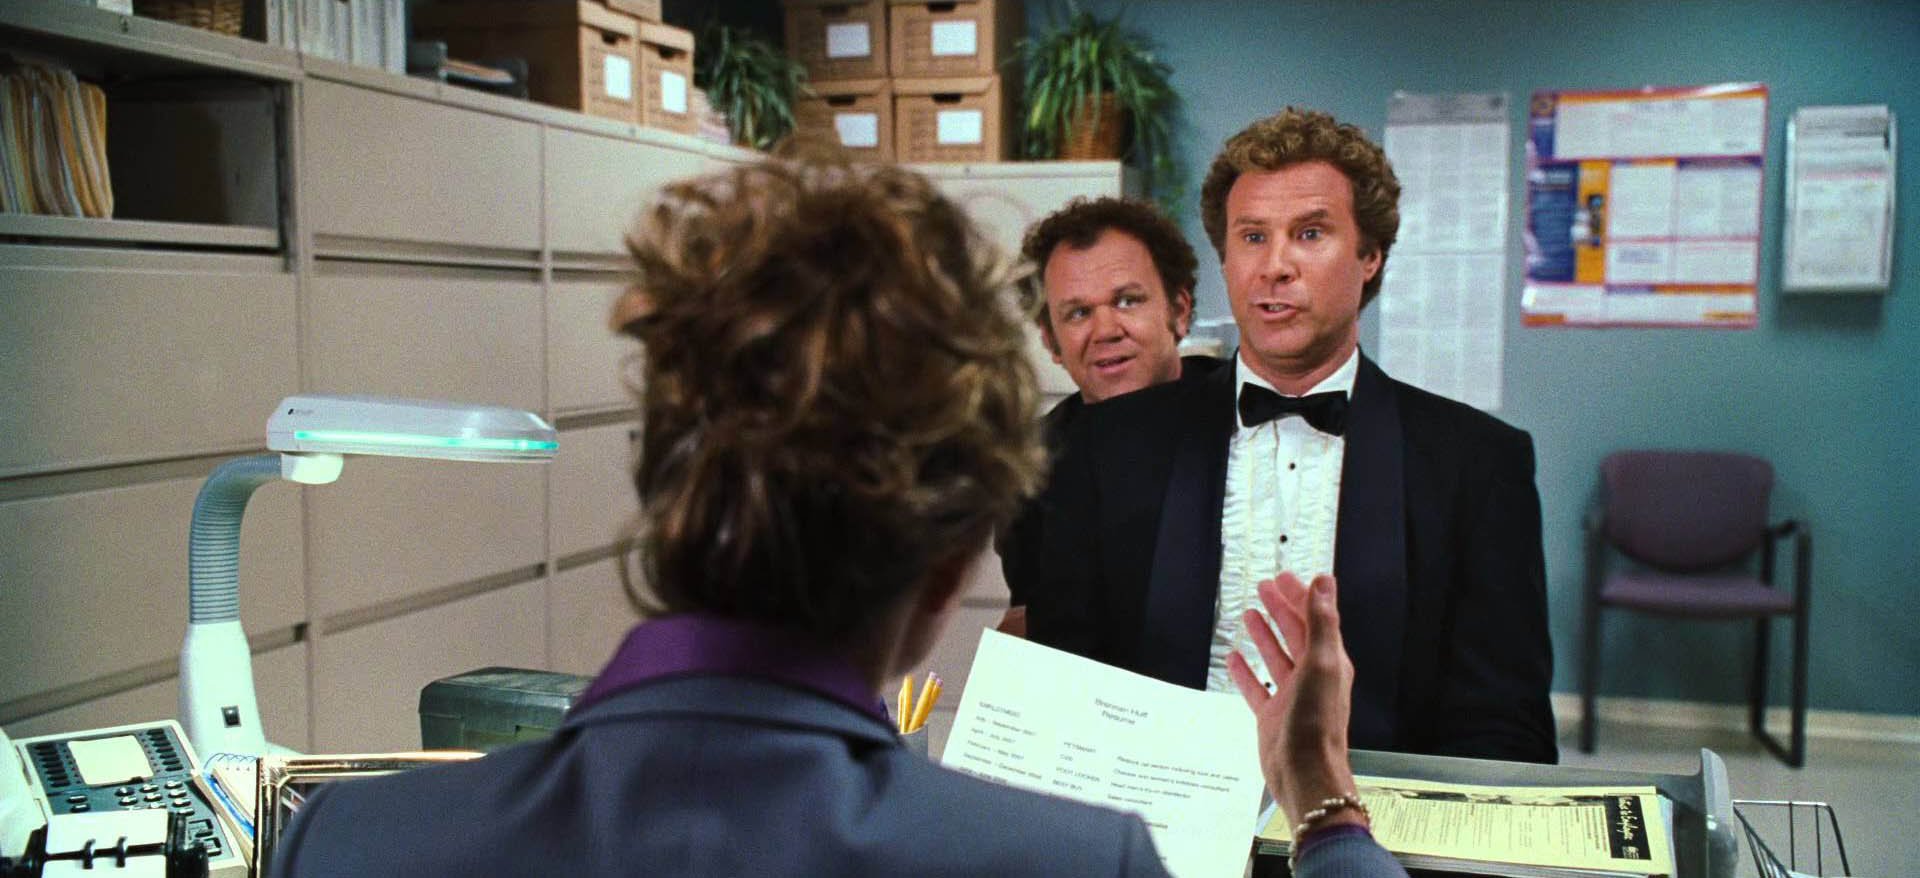 John C. Reilly, left and Will Ferrell in Step Brothers.